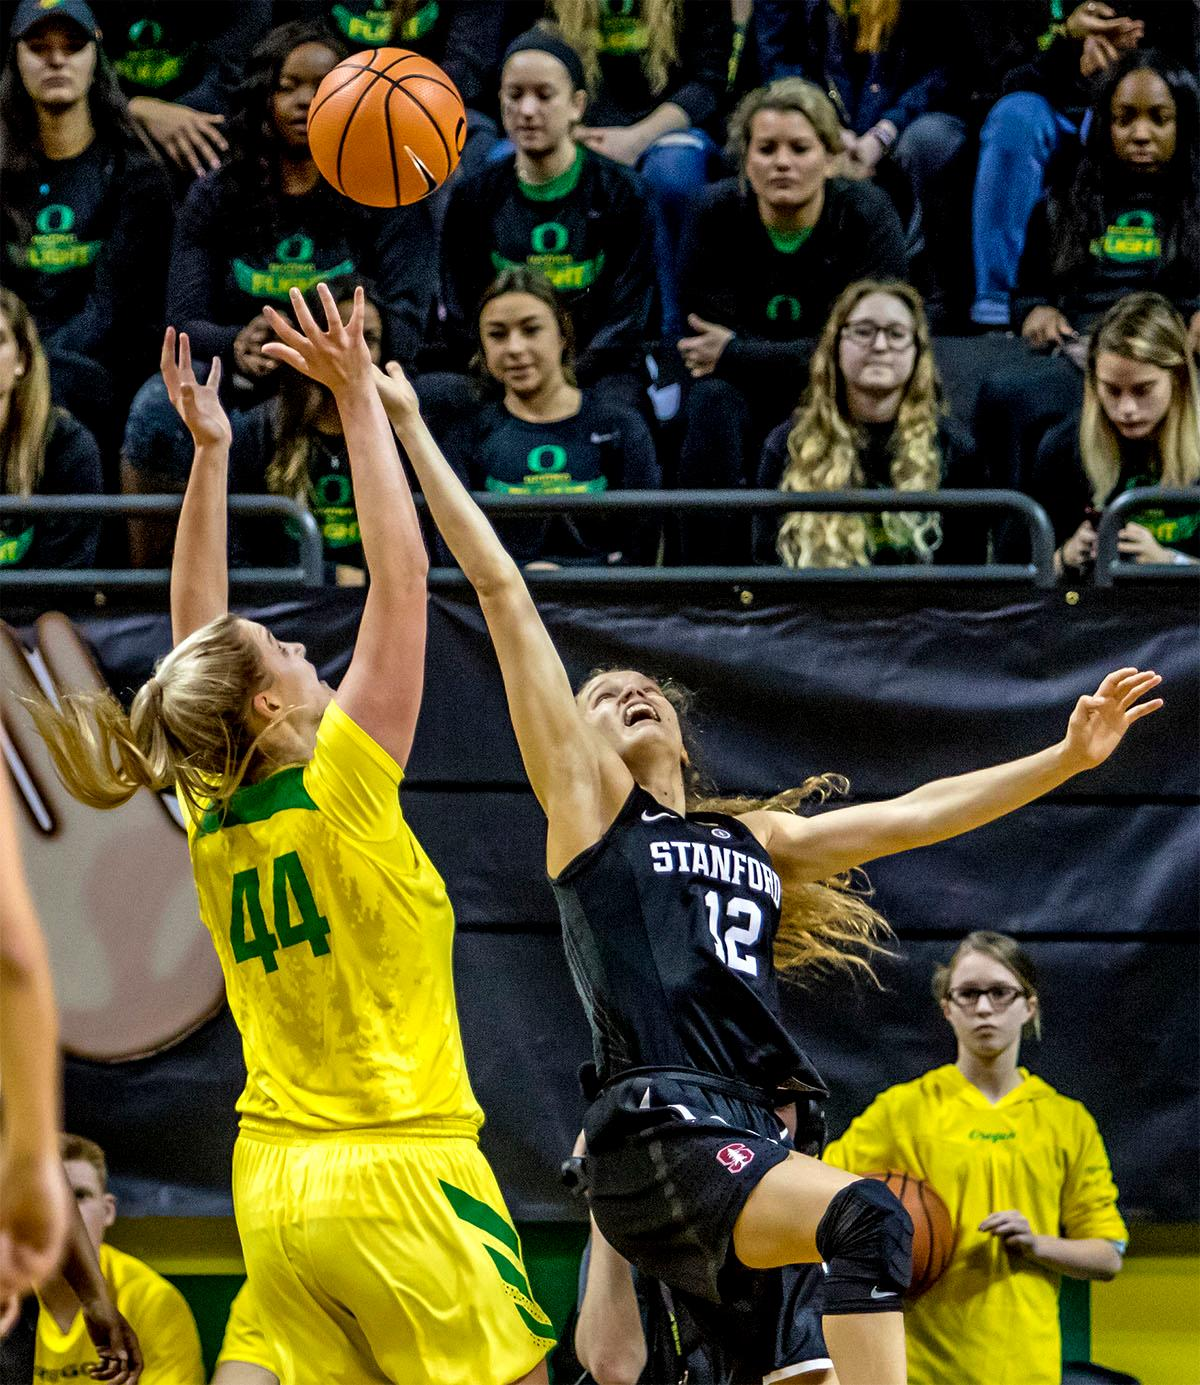 The Duck's Mallory McGwire (#44) goes for the rebound against the Cardinal's Brittany McPhee (#12). The Stanford Cardinal defeated the Oregon Ducks 78-65 on Sunday afternoon at Matthew Knight Arena. Stanford is now 10-2 in conference play and with this loss the Ducks drop to 10-2. Leading the Stanford Cardinal was Brittany McPhee with 33 points, Alanna Smith with 14 points, and Kiana Williams with 14 points. For the Ducks Sabrina Ionescu led with 22 points, Ruthy Hebard added 16 points, and Satou Sabally put in 14 points. Photo by August Frank, Oregon News Lab